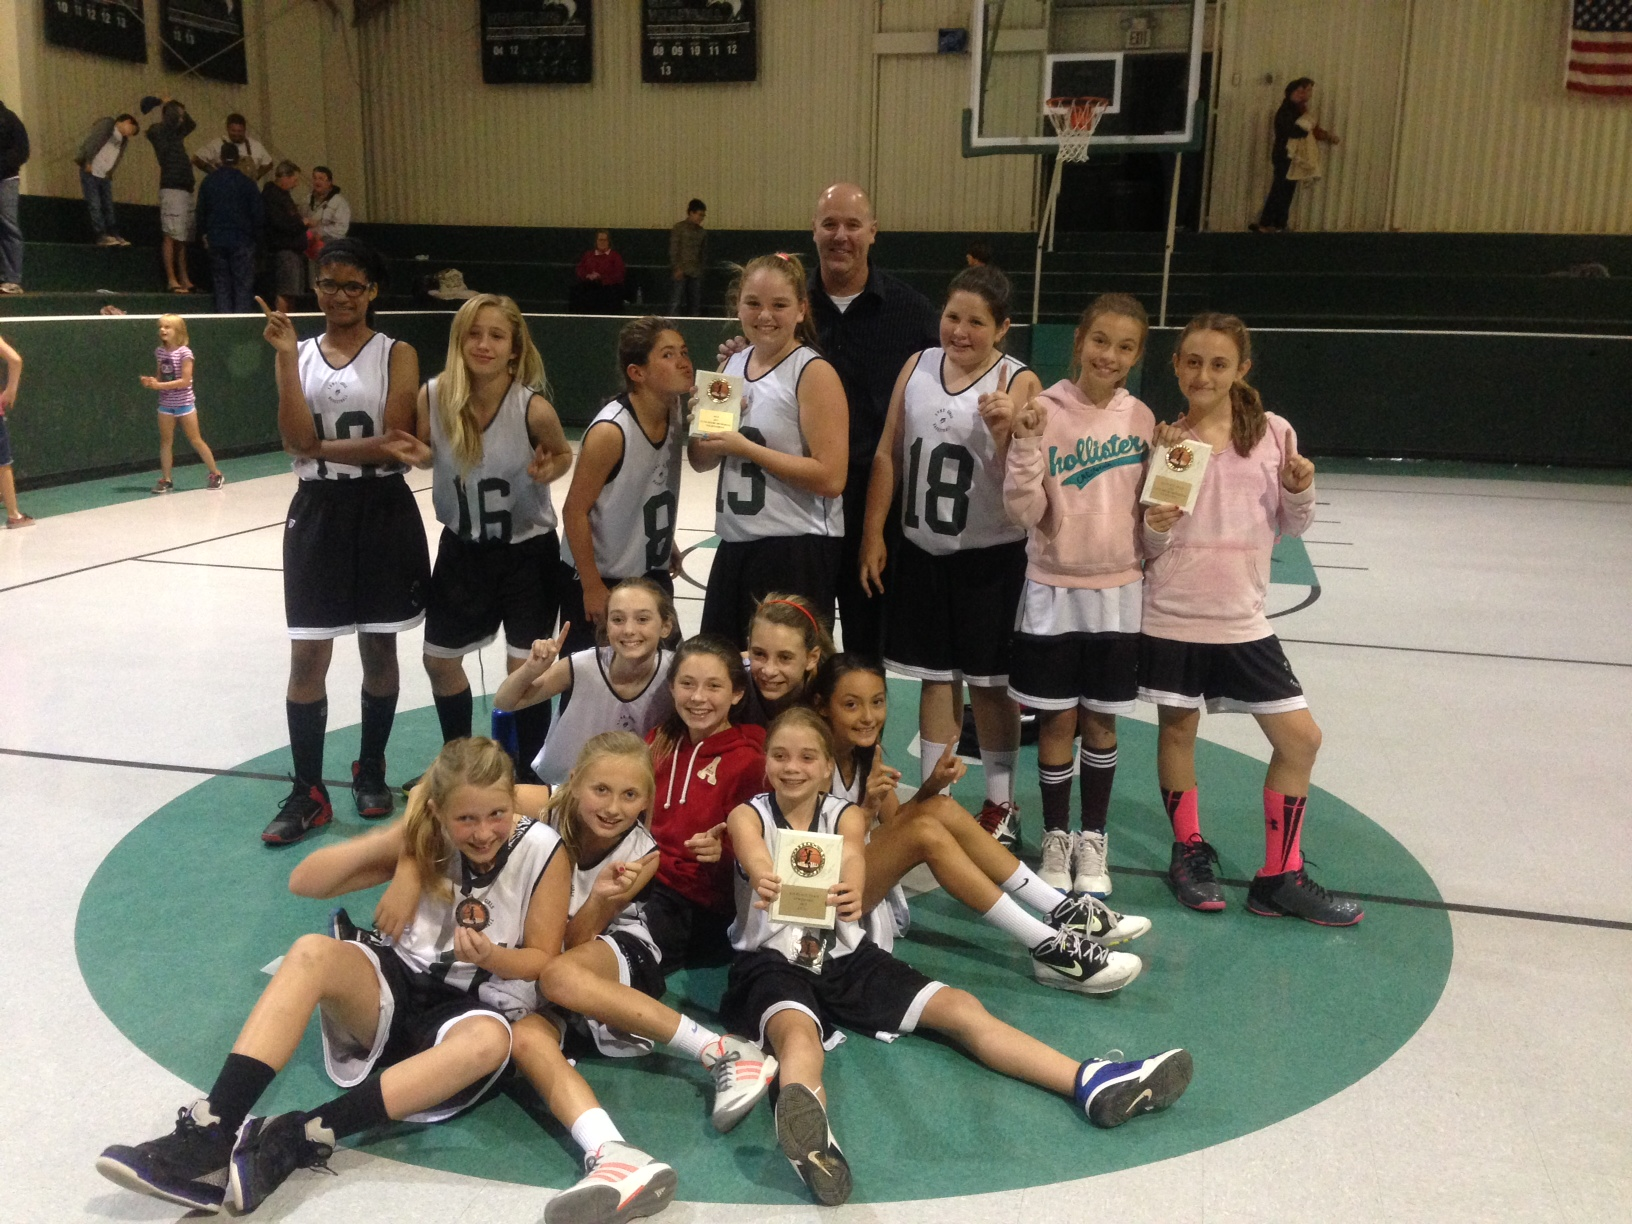 Lynn Be2013 6th Grade Girls Basketball Tournament Champions!